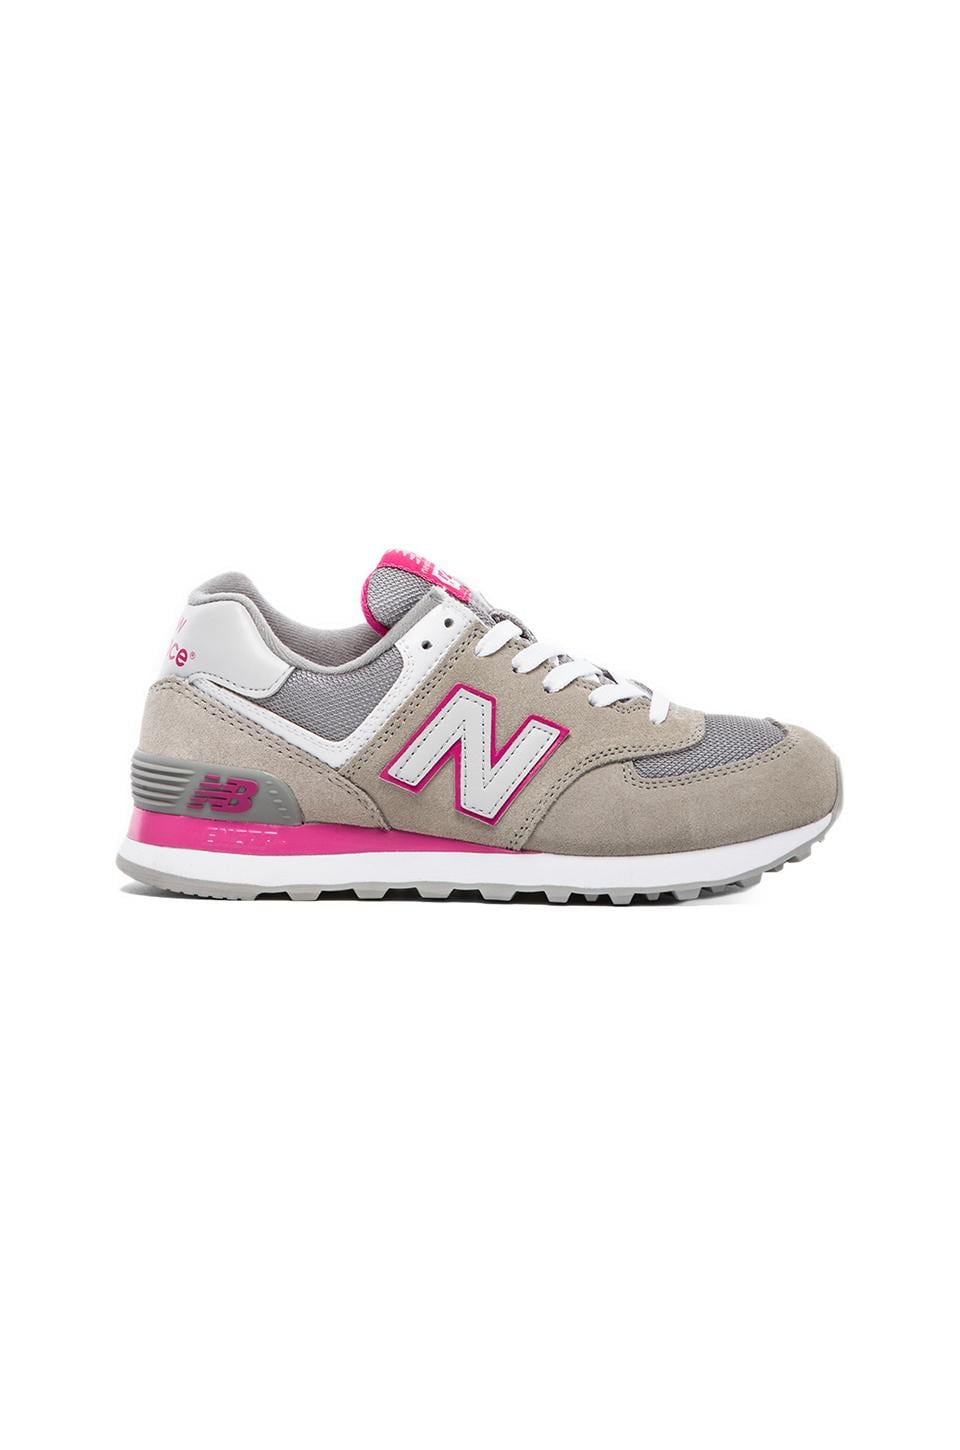 New Balance Core Plus Collection Sneaker in Light Grey